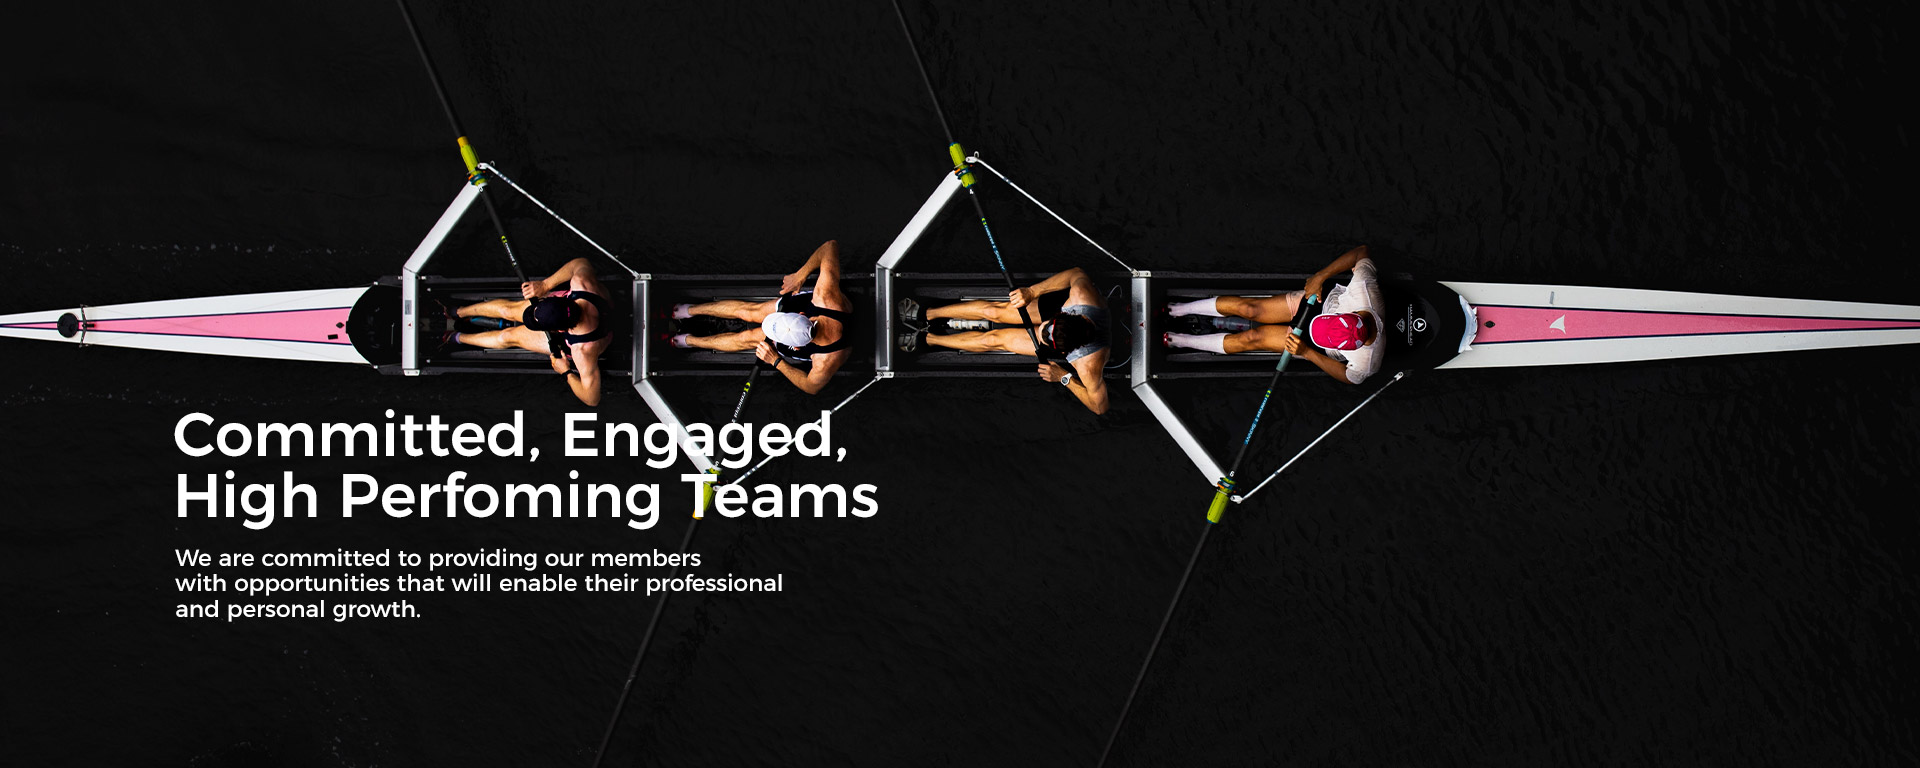 Banner2_committed_engaged_high_performing_teams_nexgen_